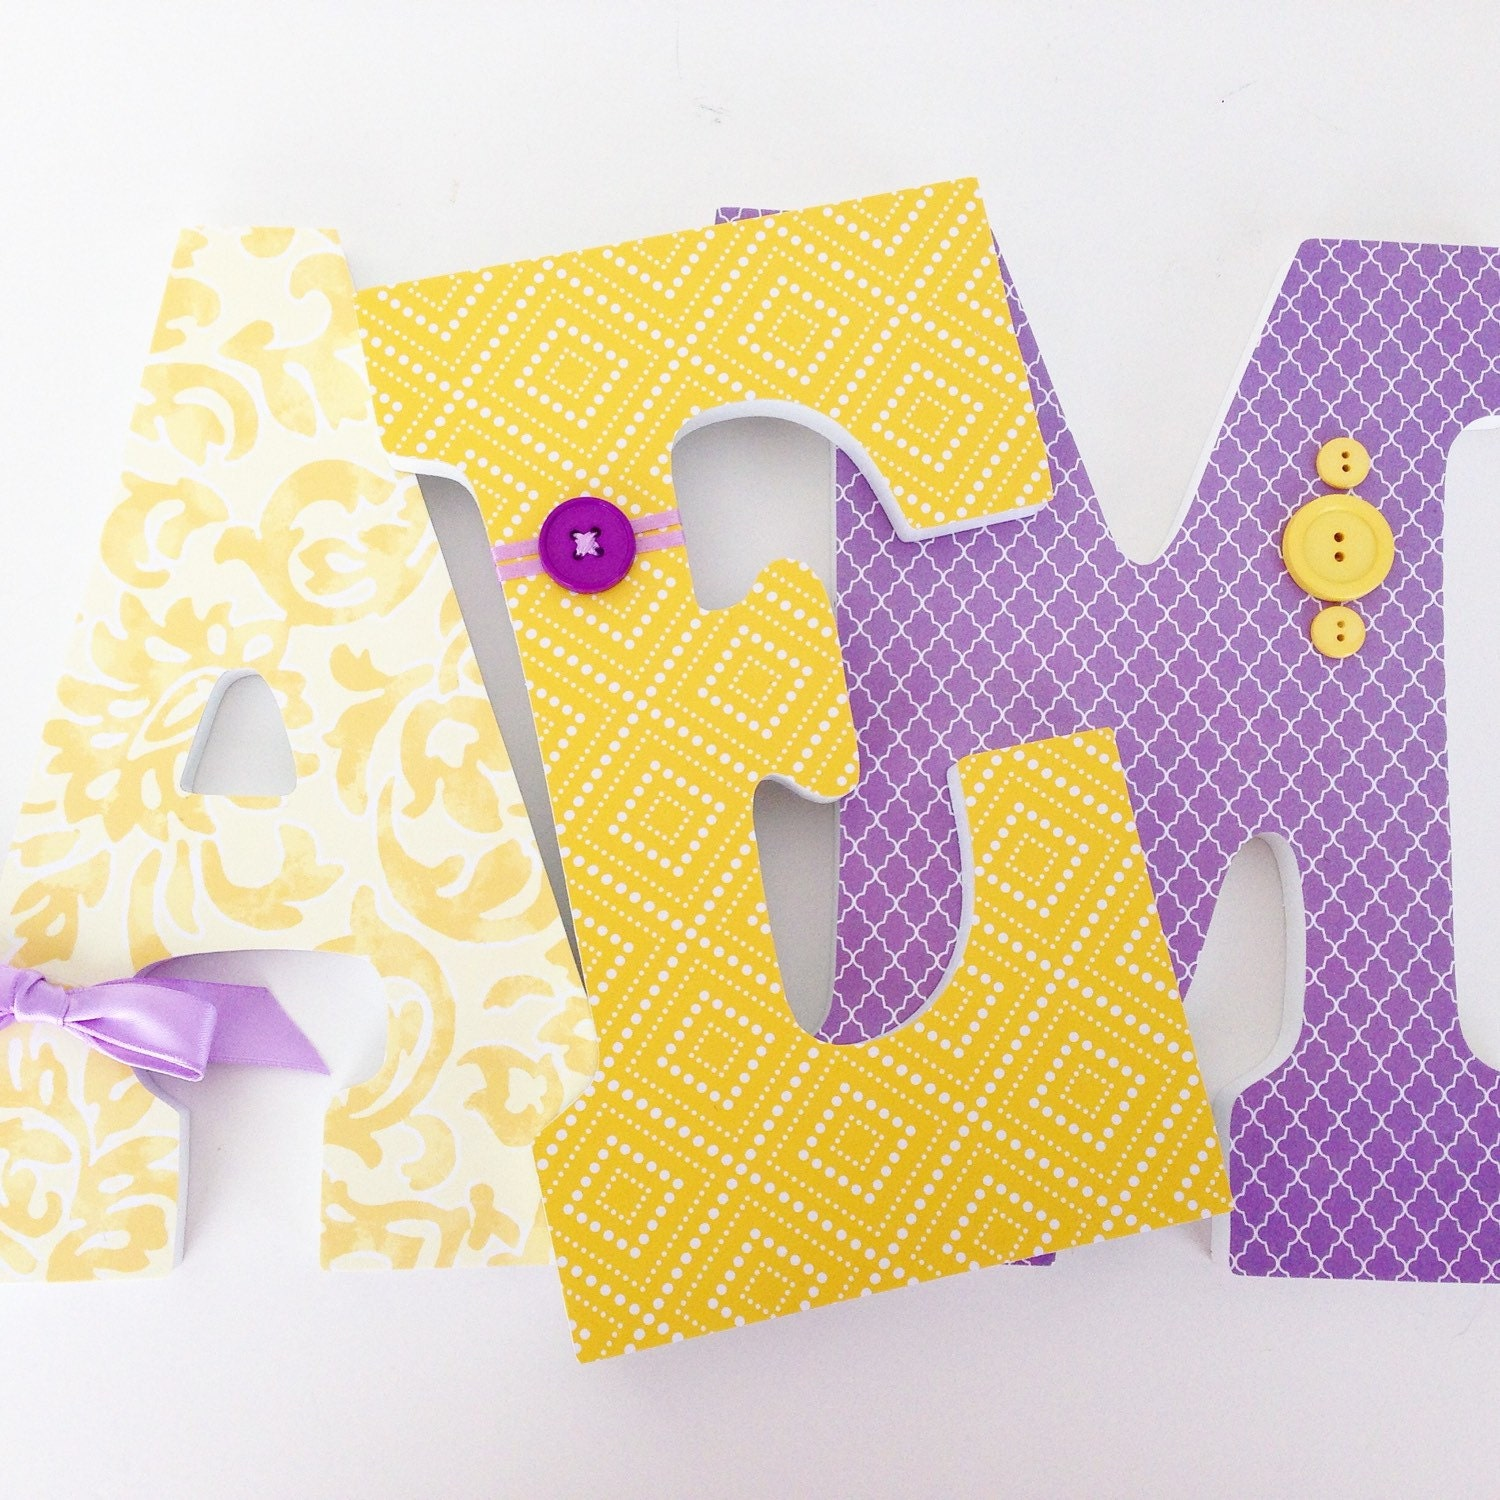 Baby name letters lavender and yellow nursery decor purple for Baby name letters decoration